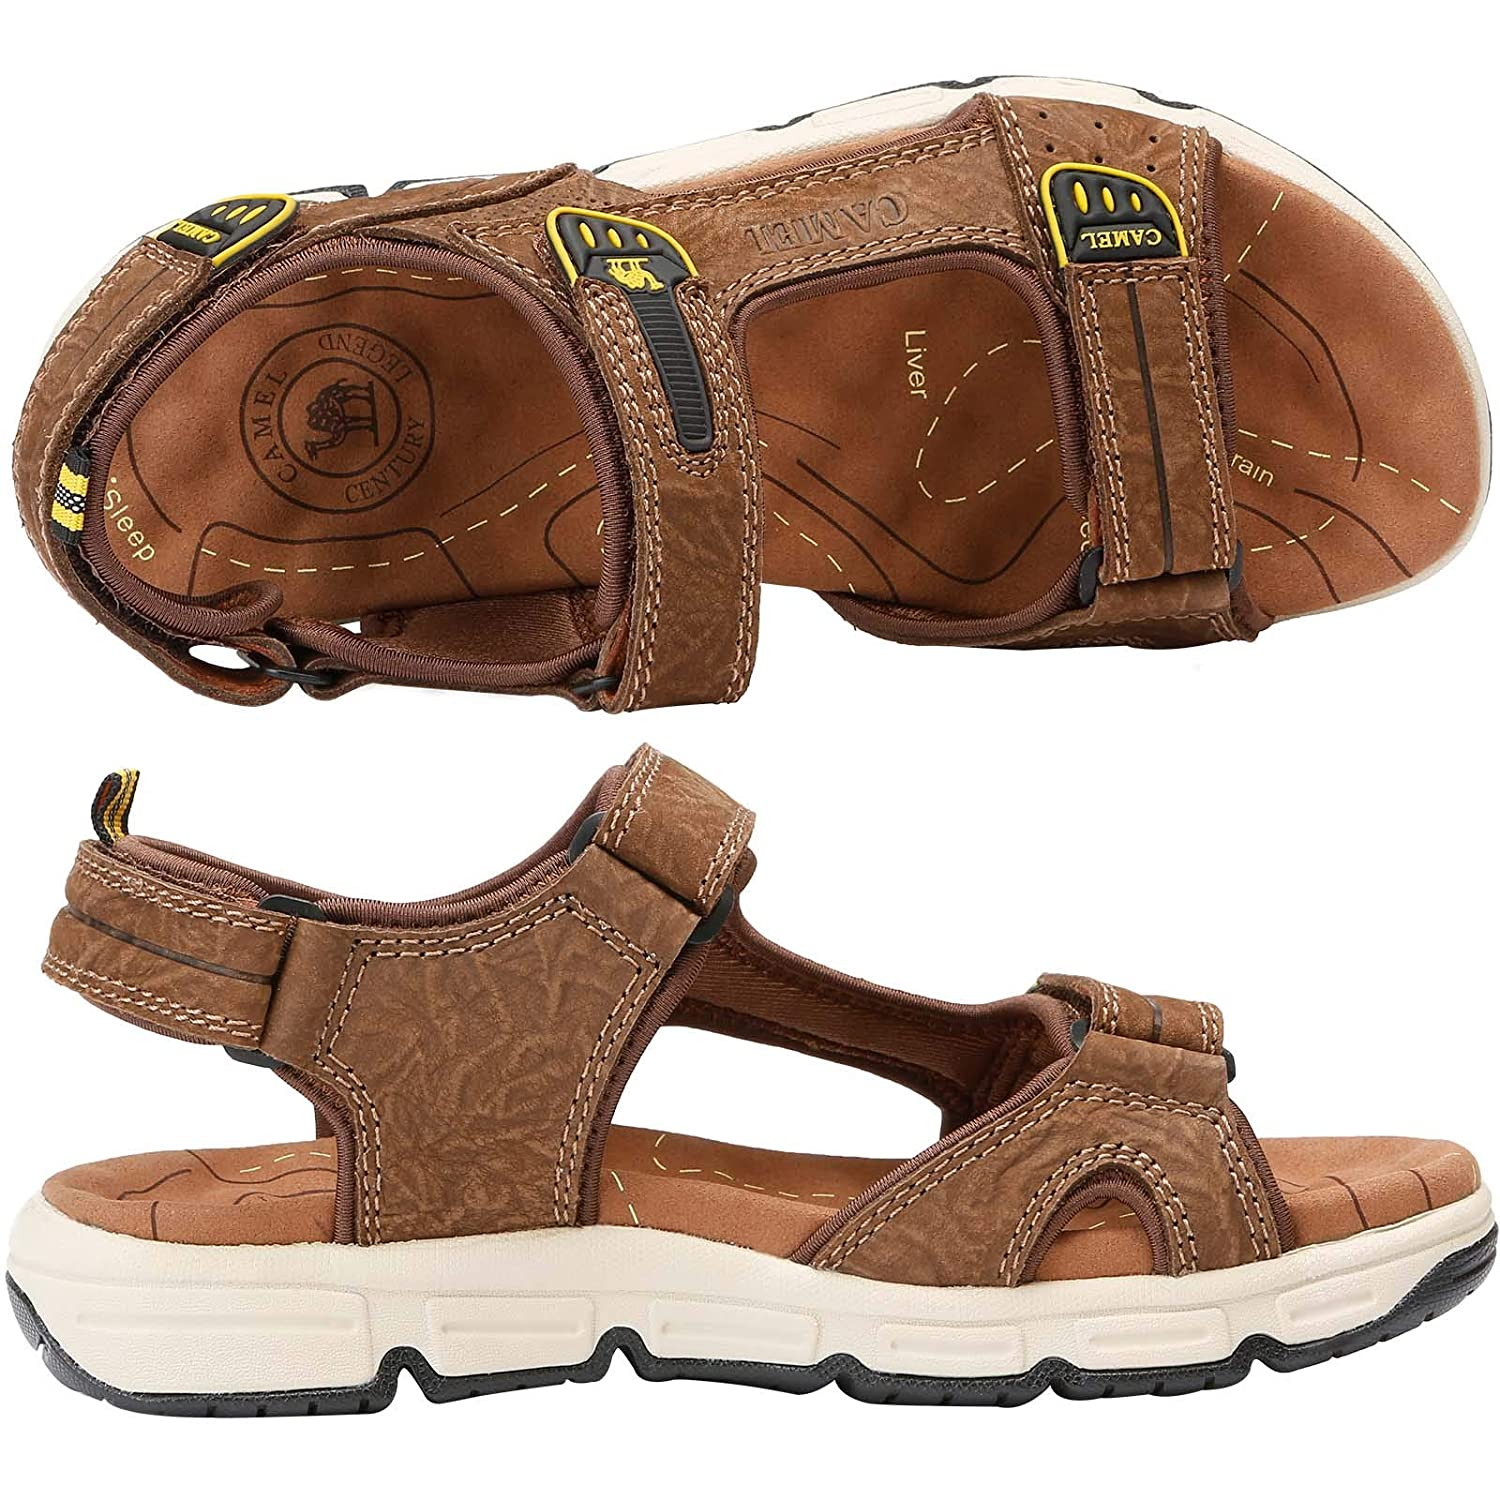 ce1c9a3d67e CAMEL CROWN Lightweight Leather Sandals Men Strap Athletic Shoes Hiking  Sandals Walking Beach Outdoor Summer